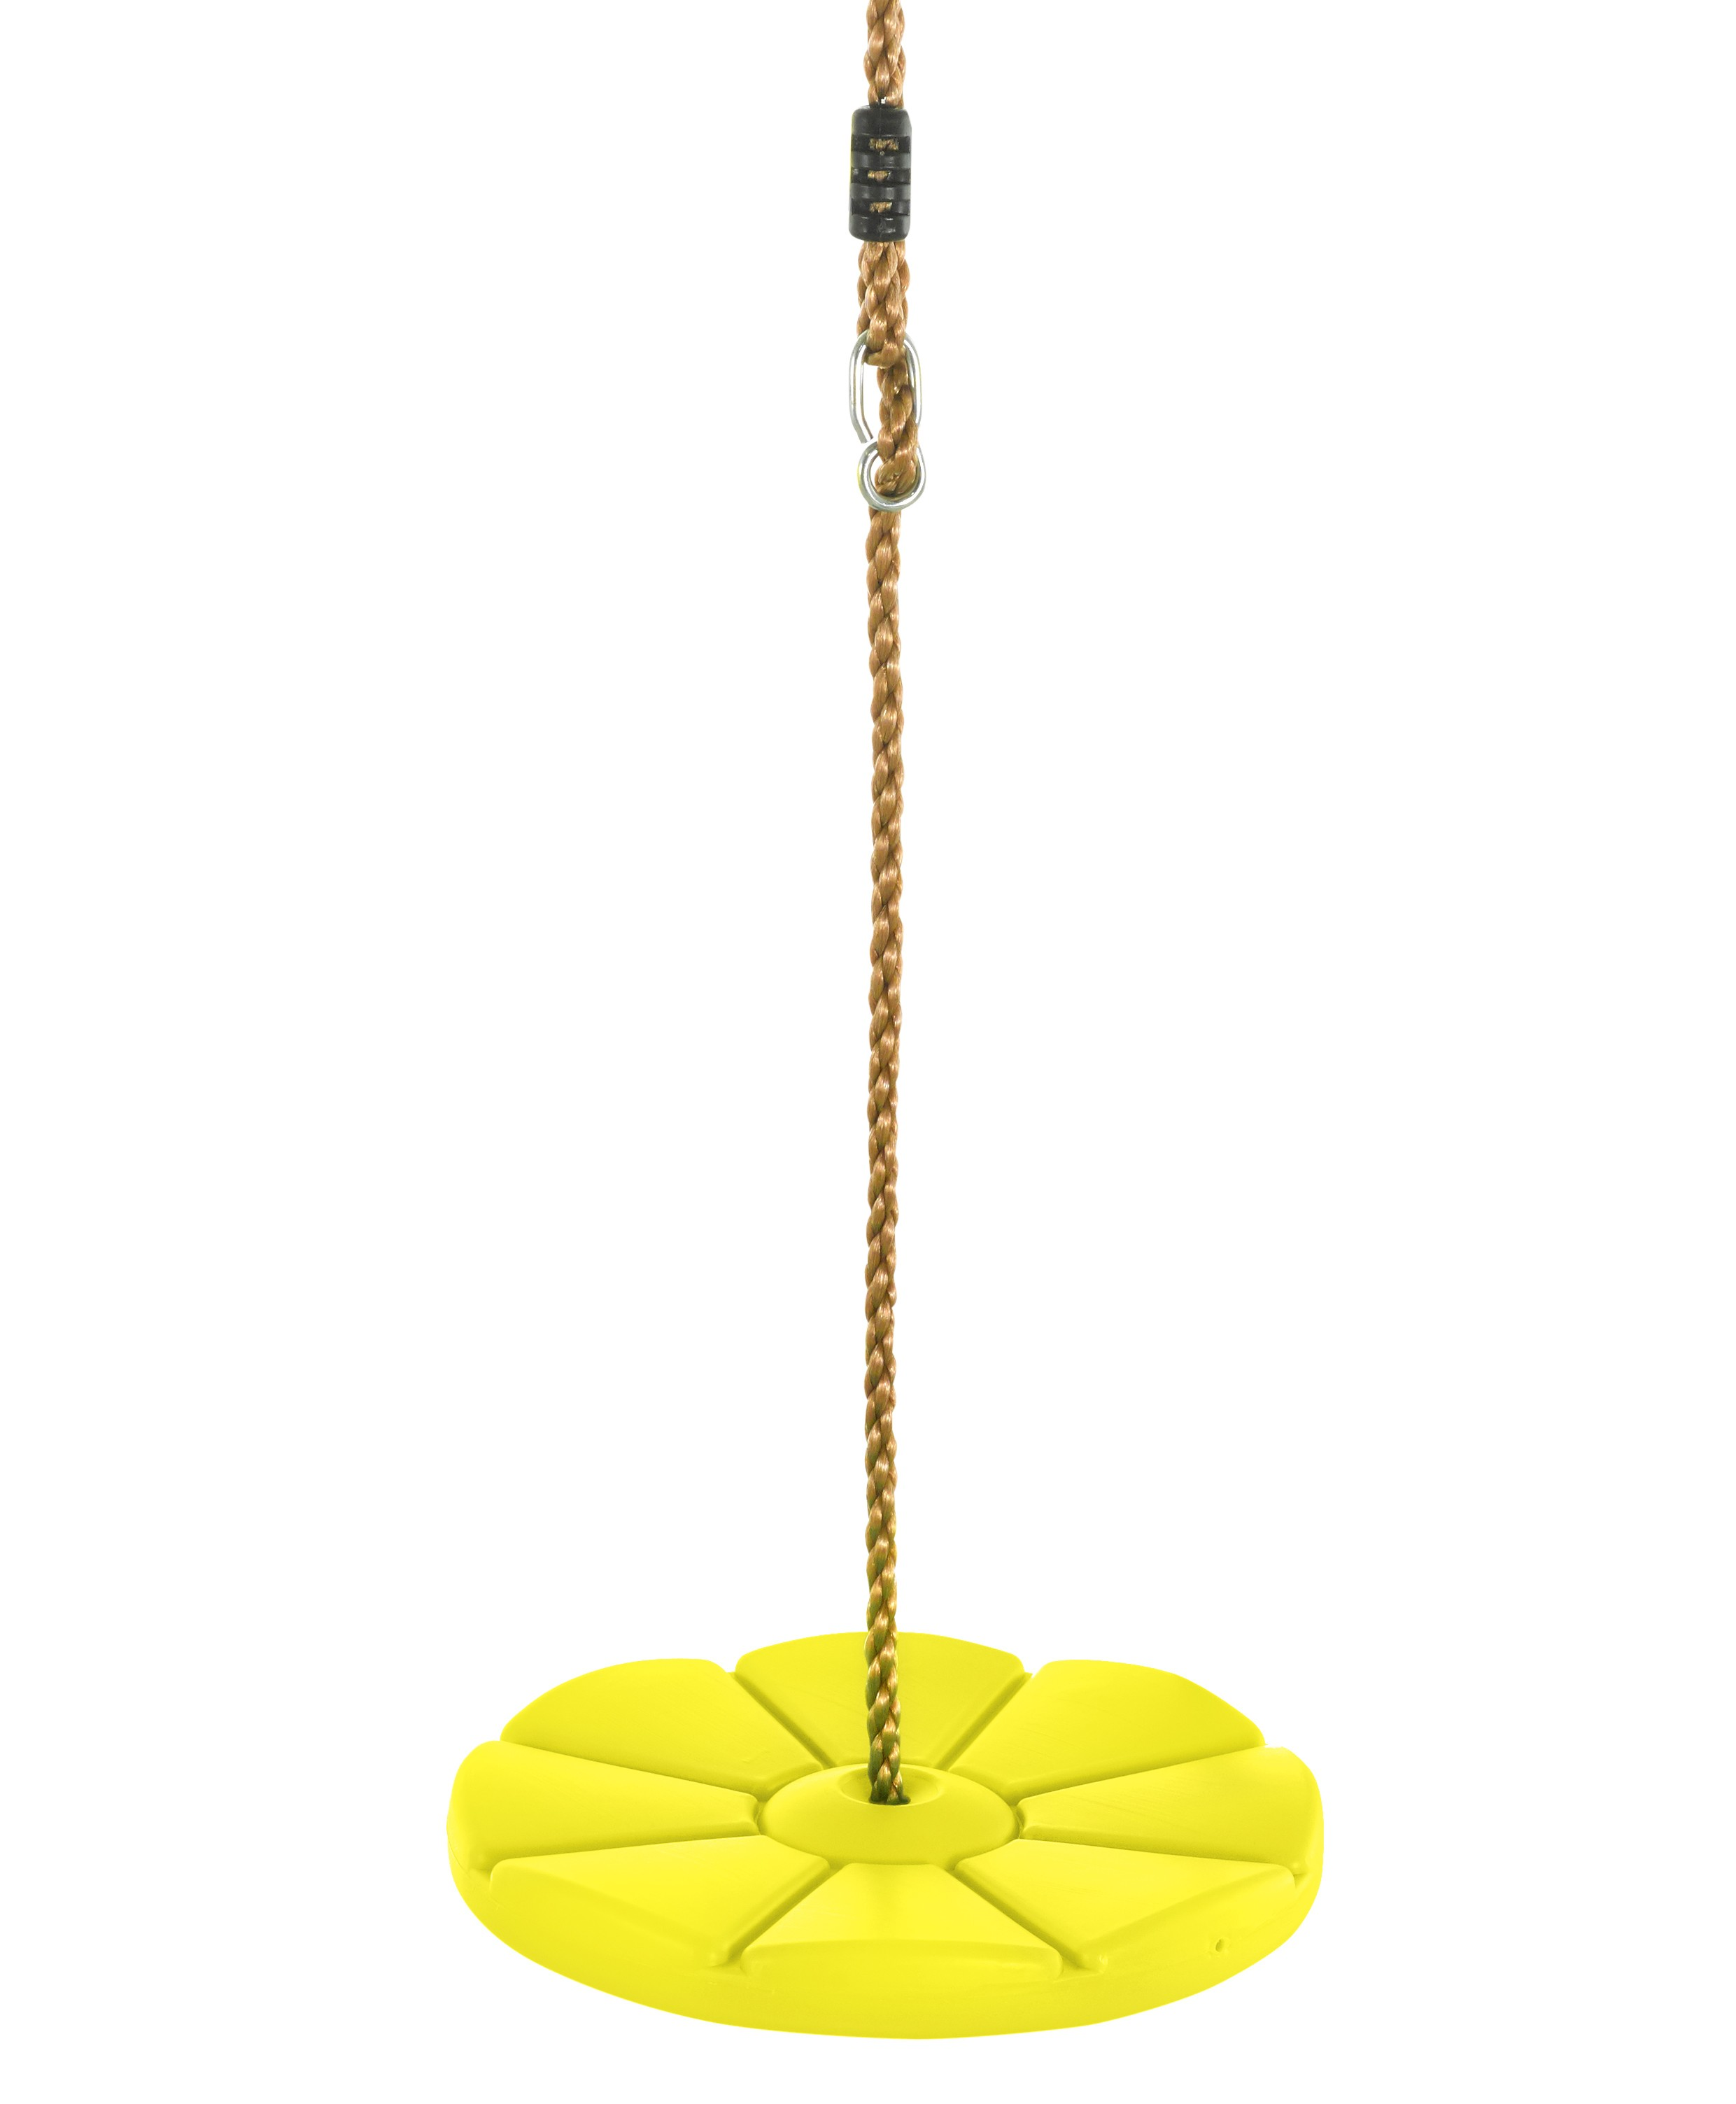 Swingan - Cool Disc Swing with Adjustable Rope - Fully Assembled - Yellow